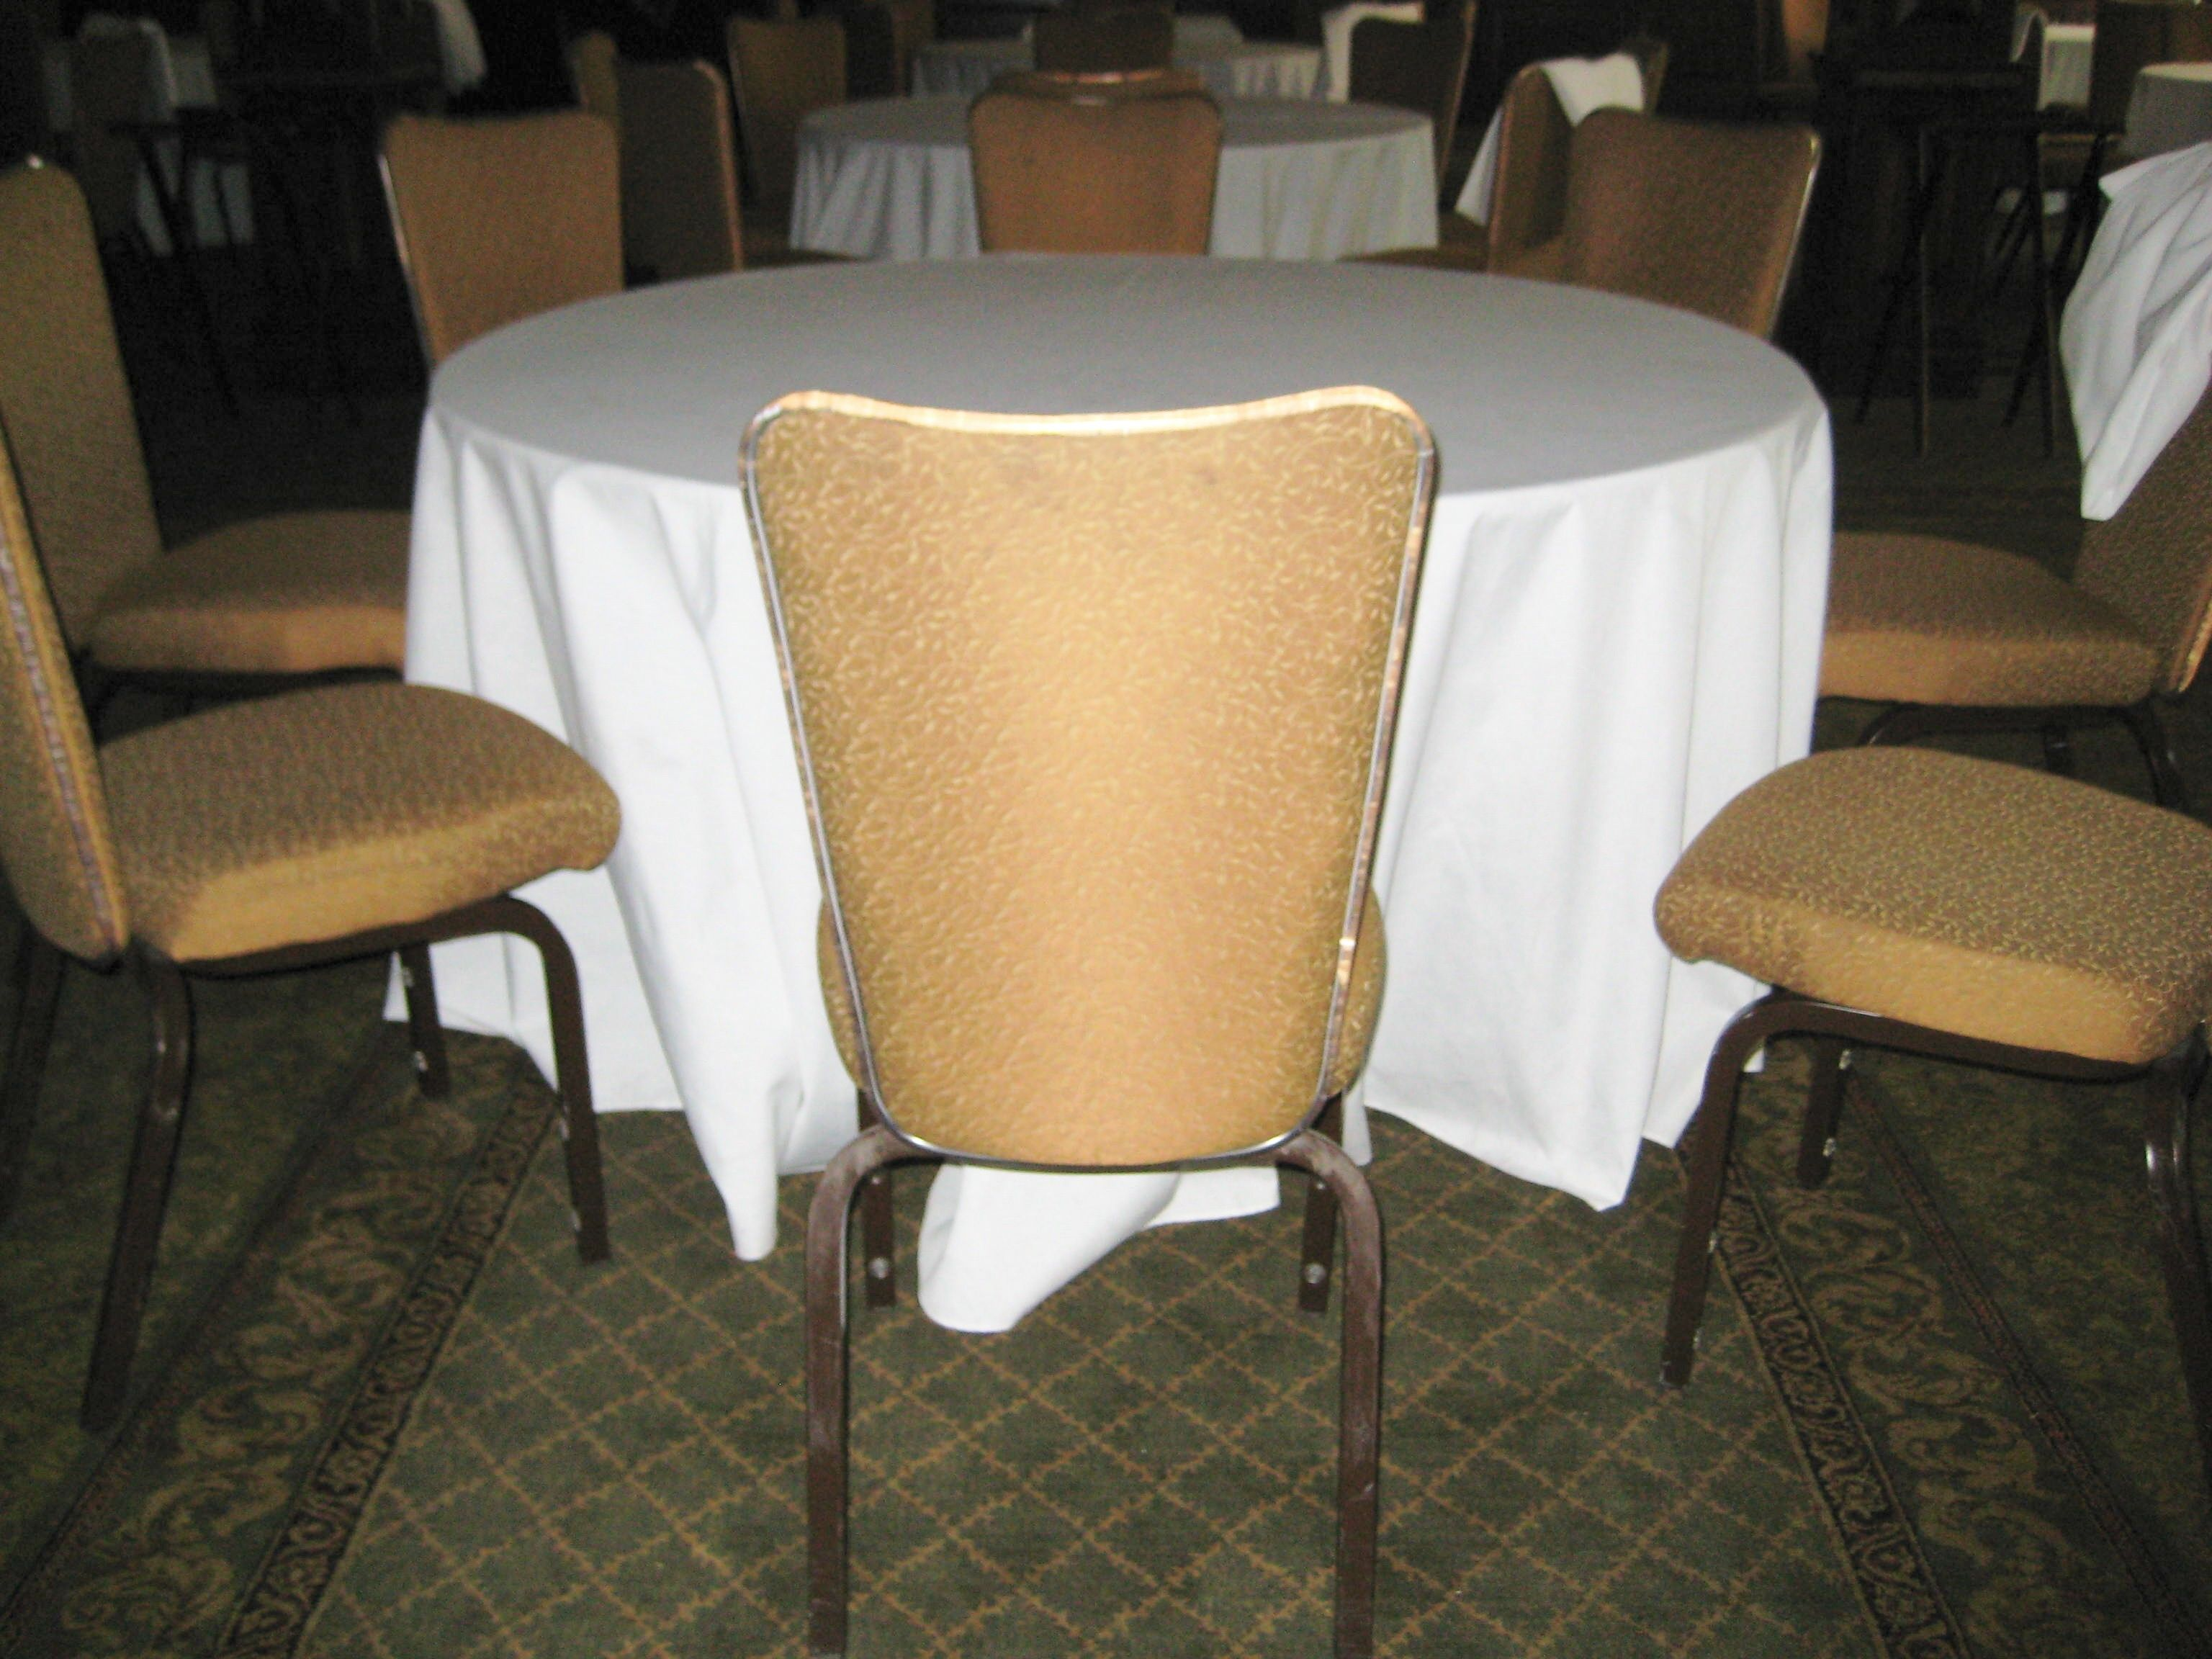 Ugly Chair Ugly Banquet Chairs I Found White Chair Covers On Ebay